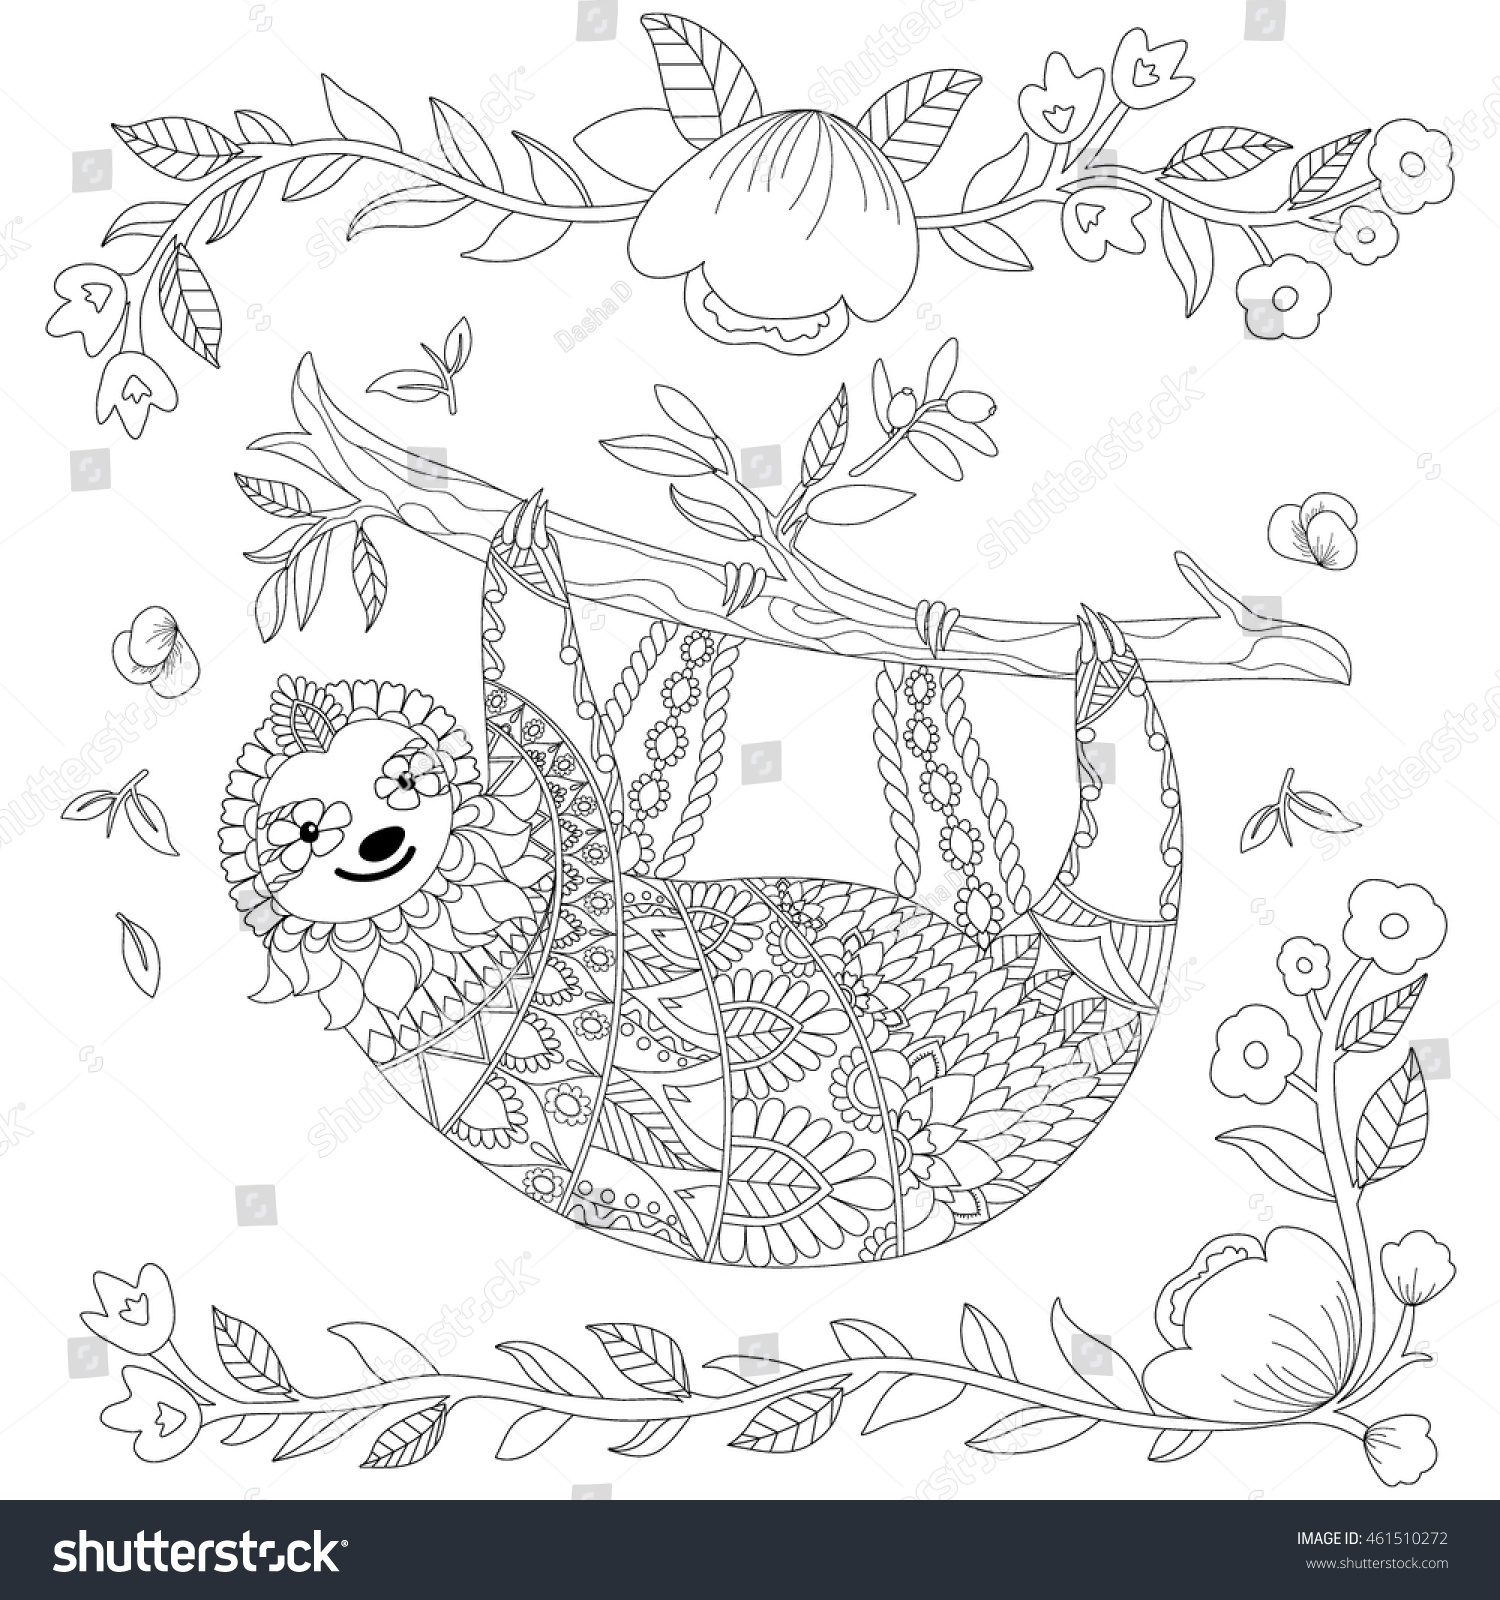 Clip Art Sloth Coloring Pages sloth coloring page futpal com vector ornate cute on tree stock 461510272 shutterstock